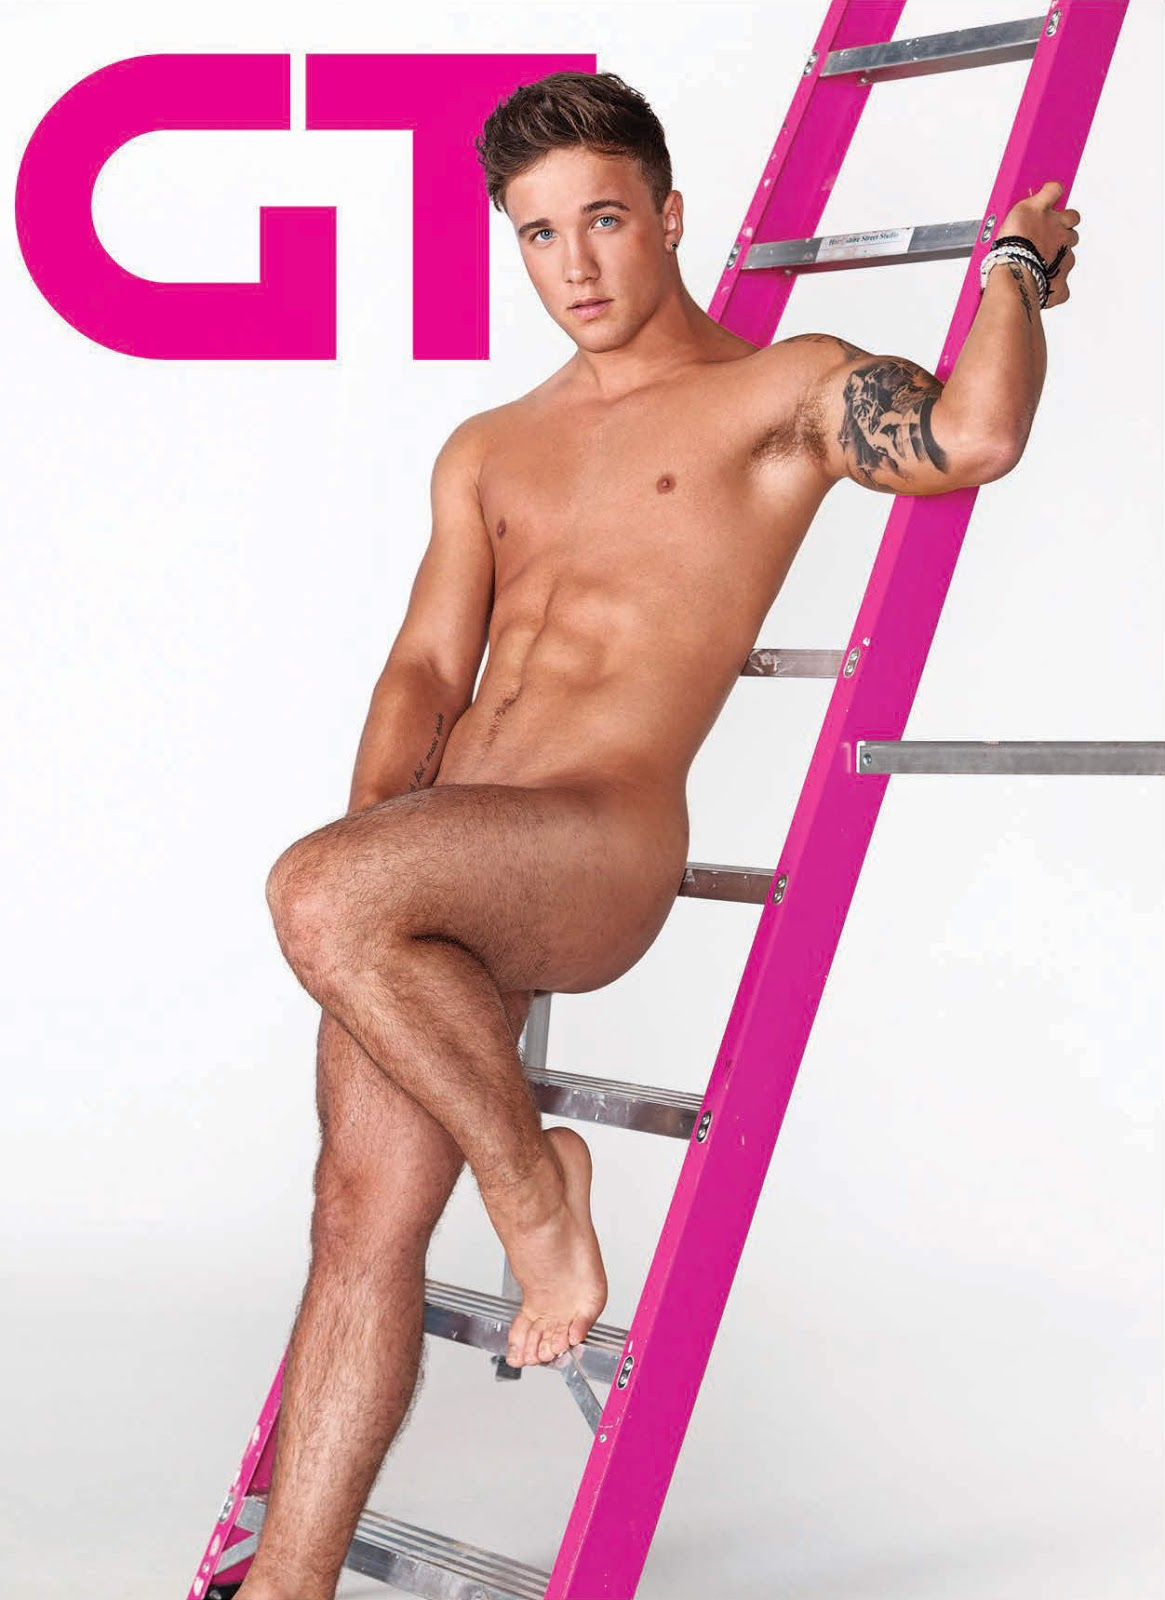 The Stars Come Out To Play: Sam Callahan - New Naked ...